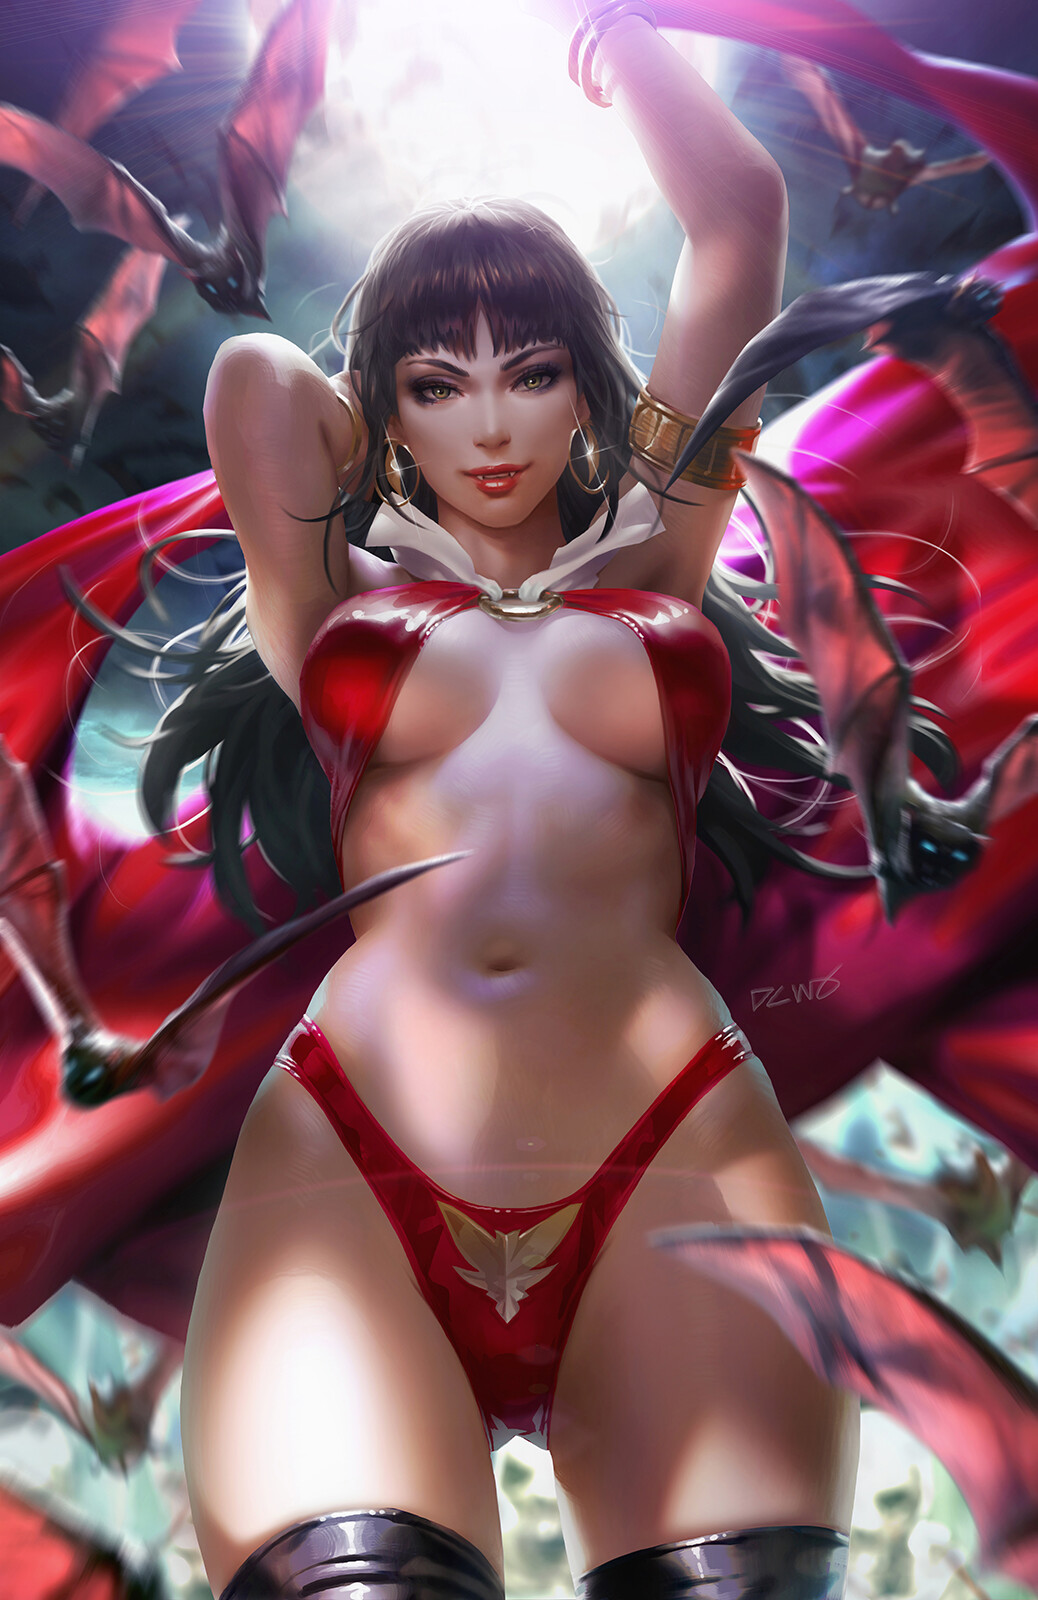 1girl armlet arms_up bangle bangs bat bikini black_hair blue_eyes bracelet breasts brown_eyes cape cowboy_shot dcwj earrings fang fangs glint gold groin highleg highleg_bikini highres hoop_earrings jewelry large_breasts long_hair looking_at_viewer navel o-ring o-ring_top parted_lips red_bikini red_cape red_swimsuit sidelocks signature skindentation slingshot_swimsuit smile solo standing stomach swimsuit thigh-highs vampirella vampirella_(character) wings